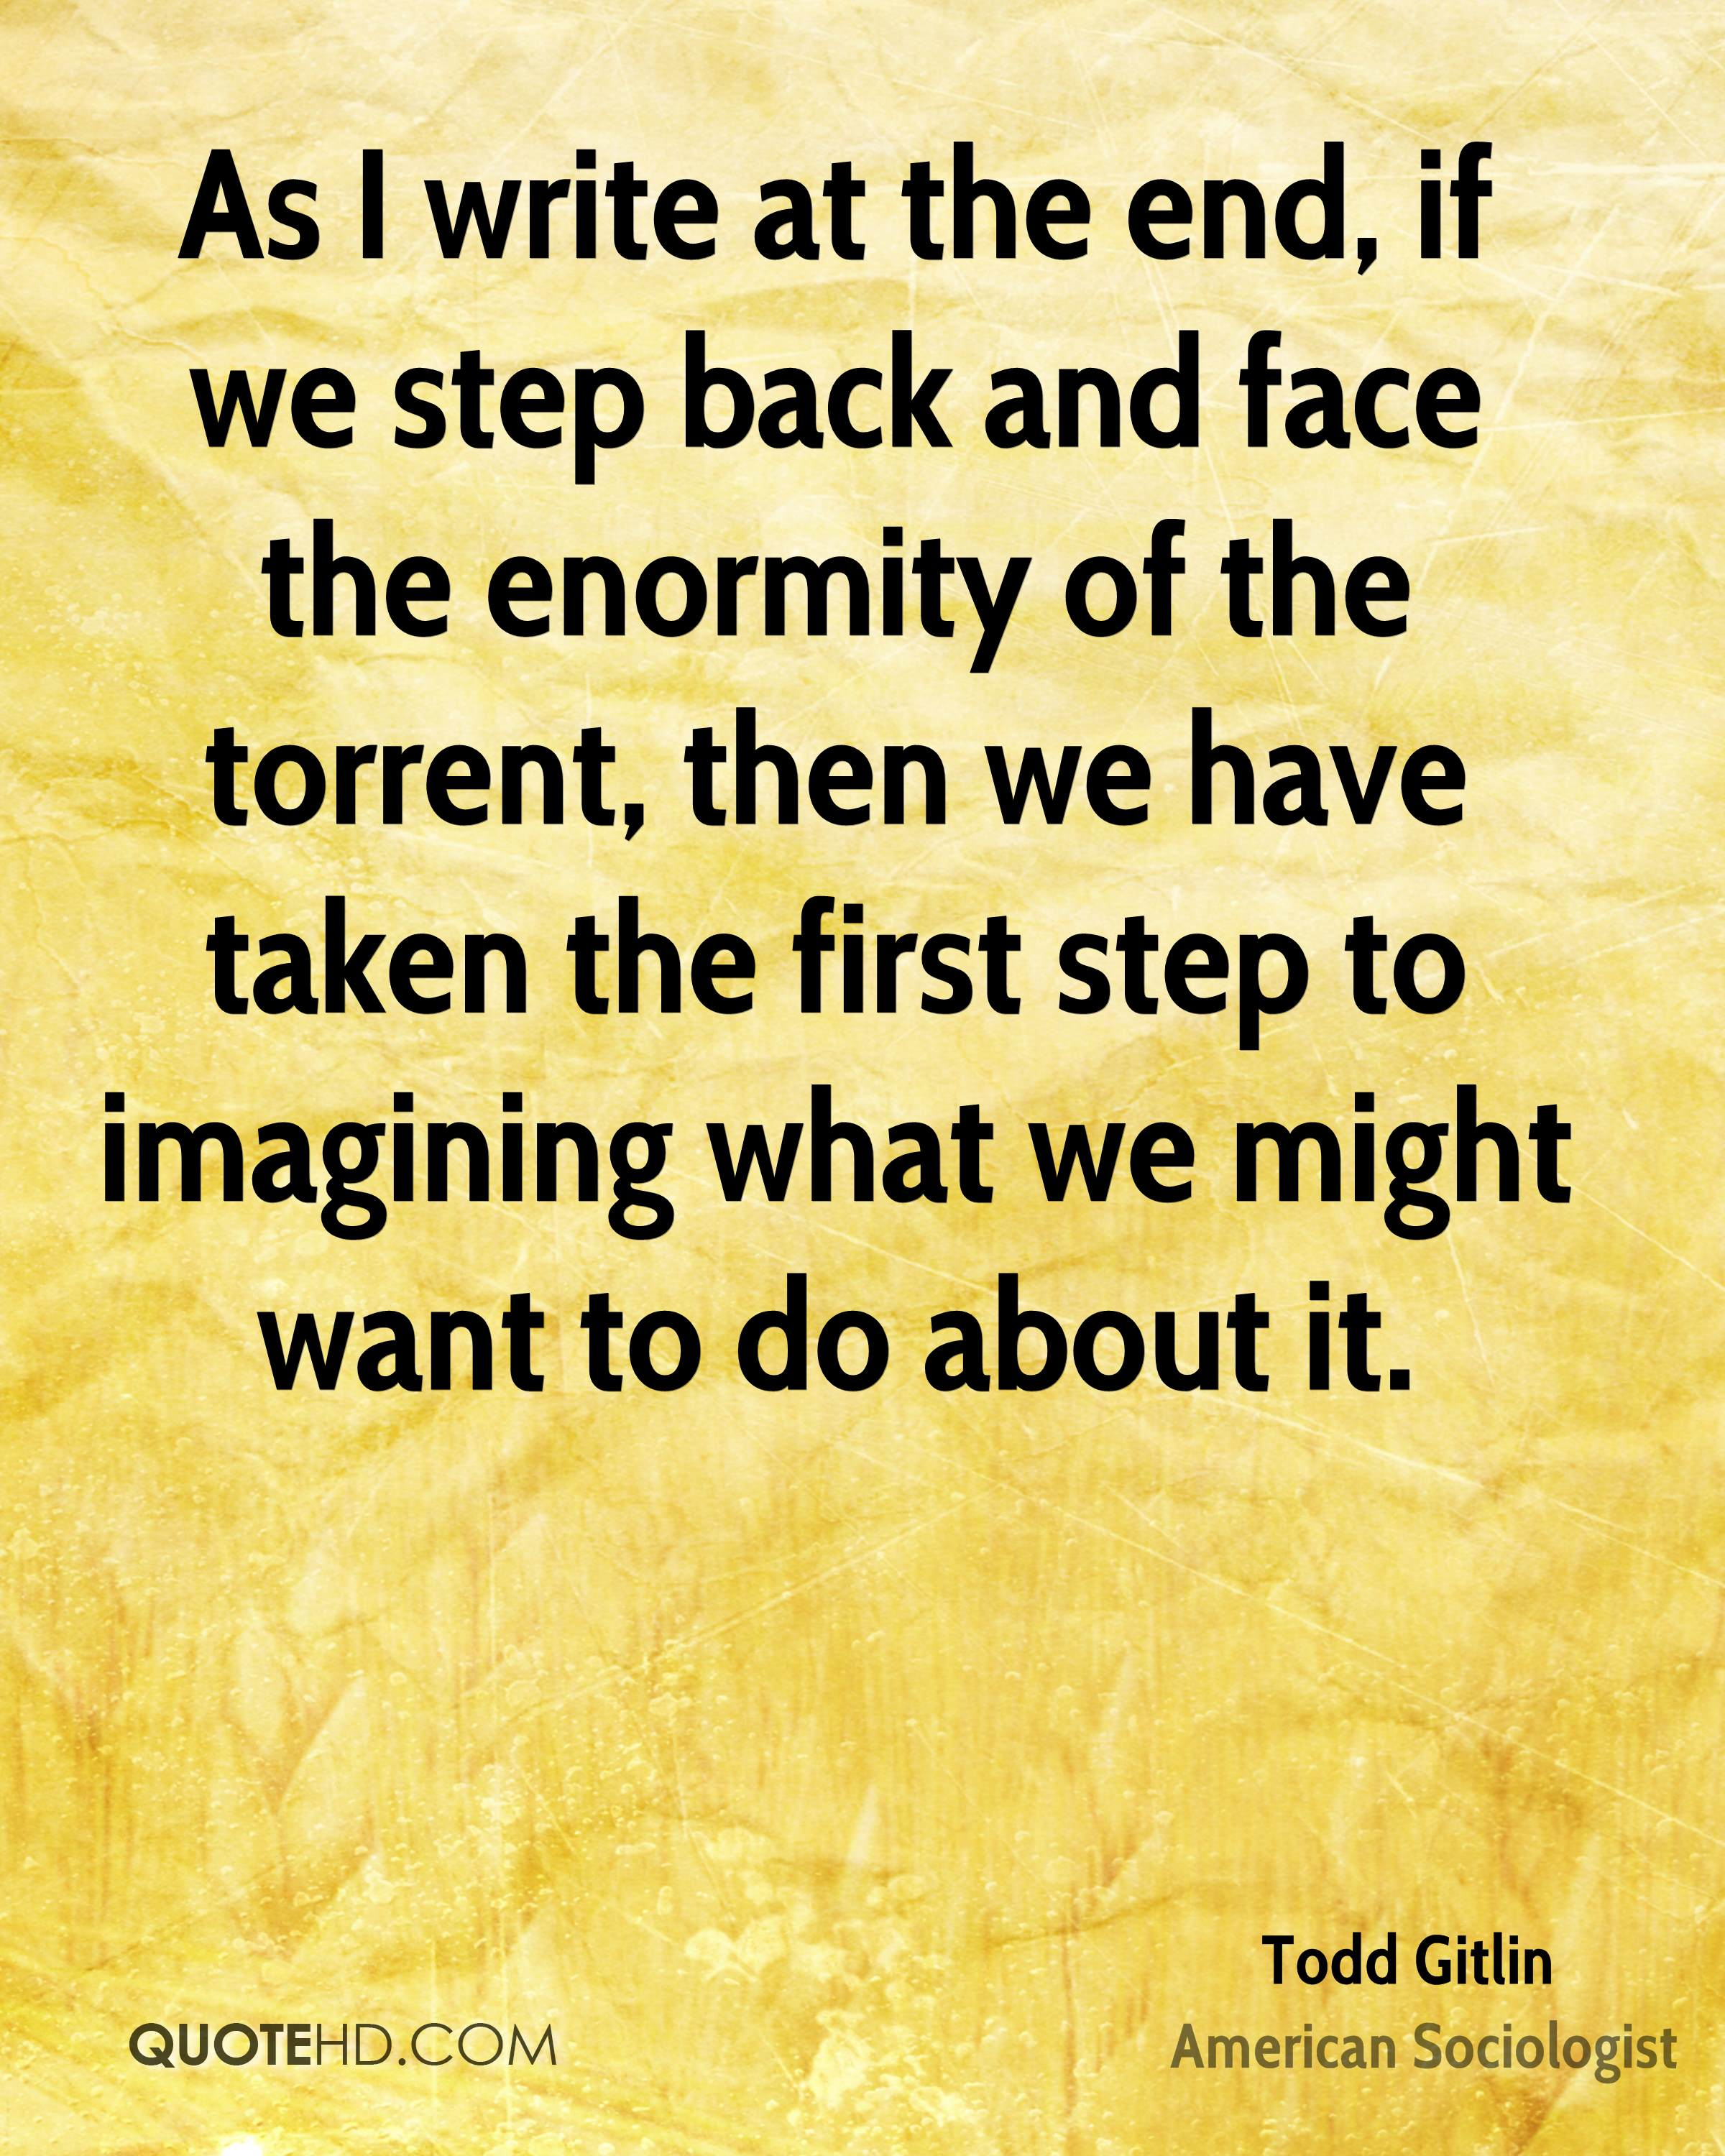 As I write at the end, if we step back and face the enormity of the torrent, then we have taken the first step to imagining what we might want to do about it.